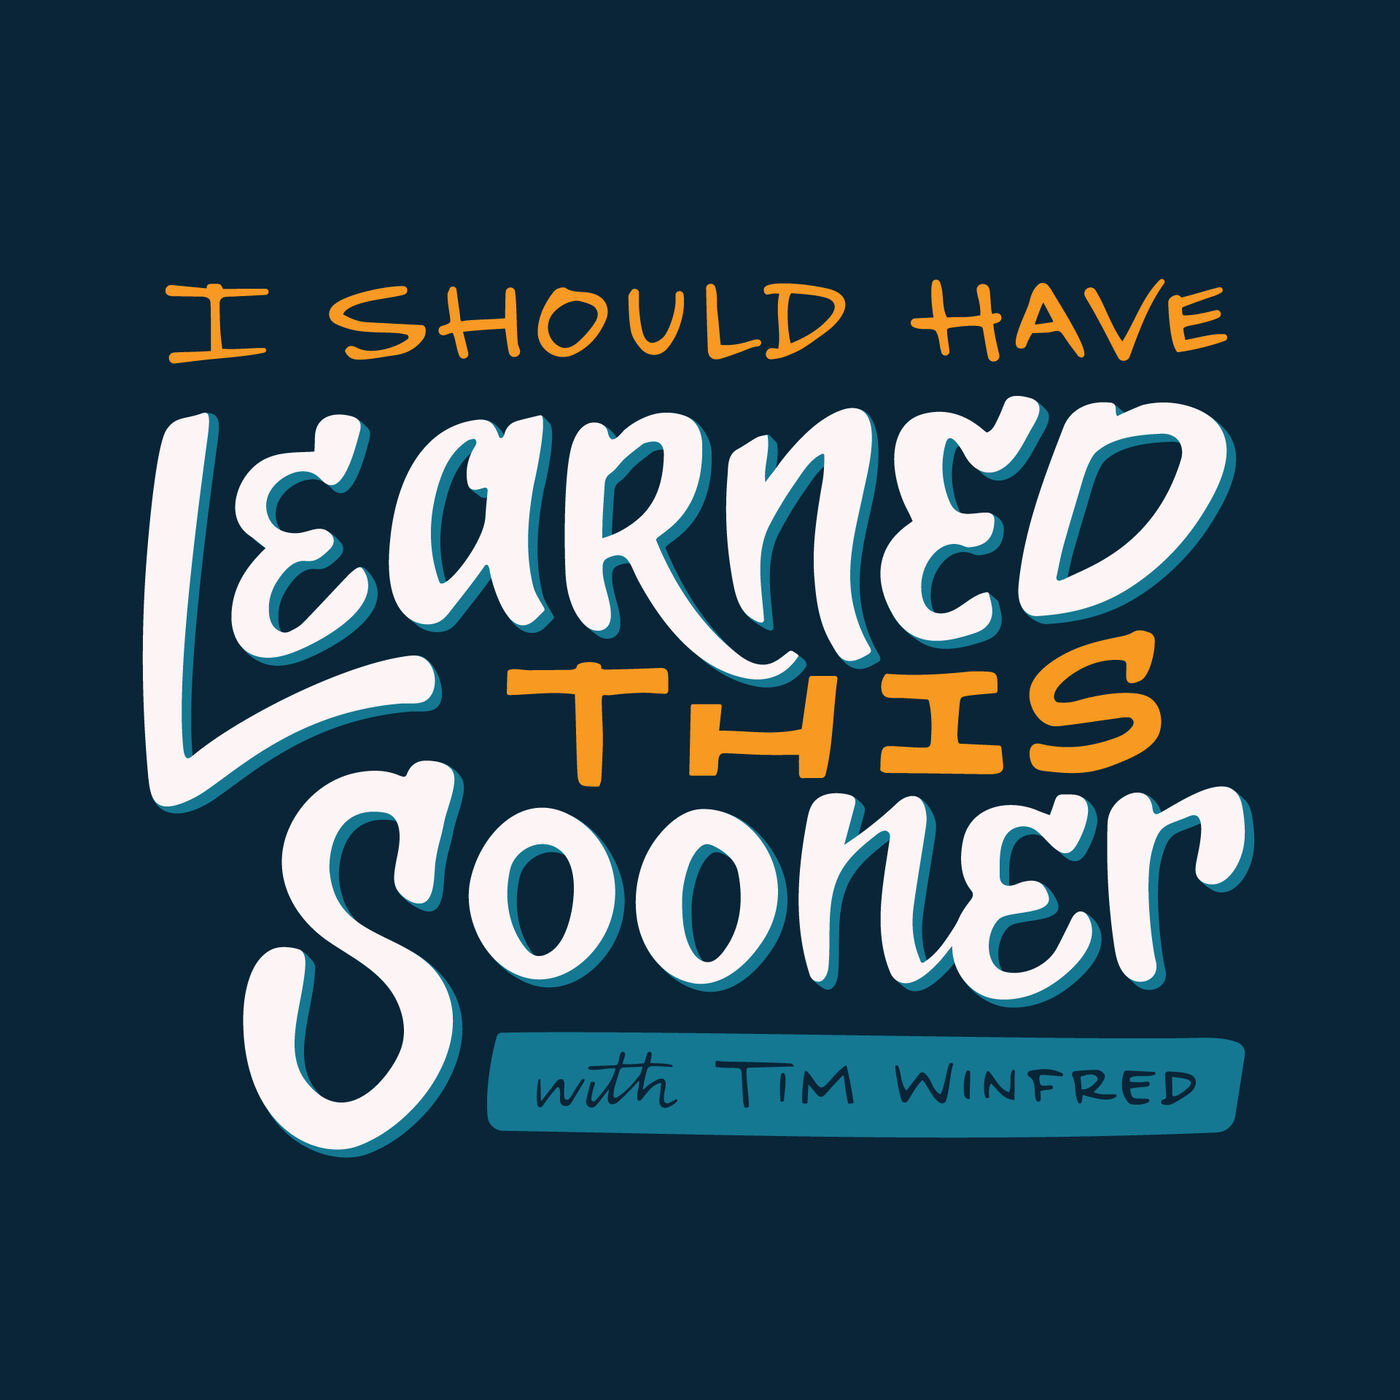 I Should Have Learned This Sooner – Discussing life lessons for self-improvement